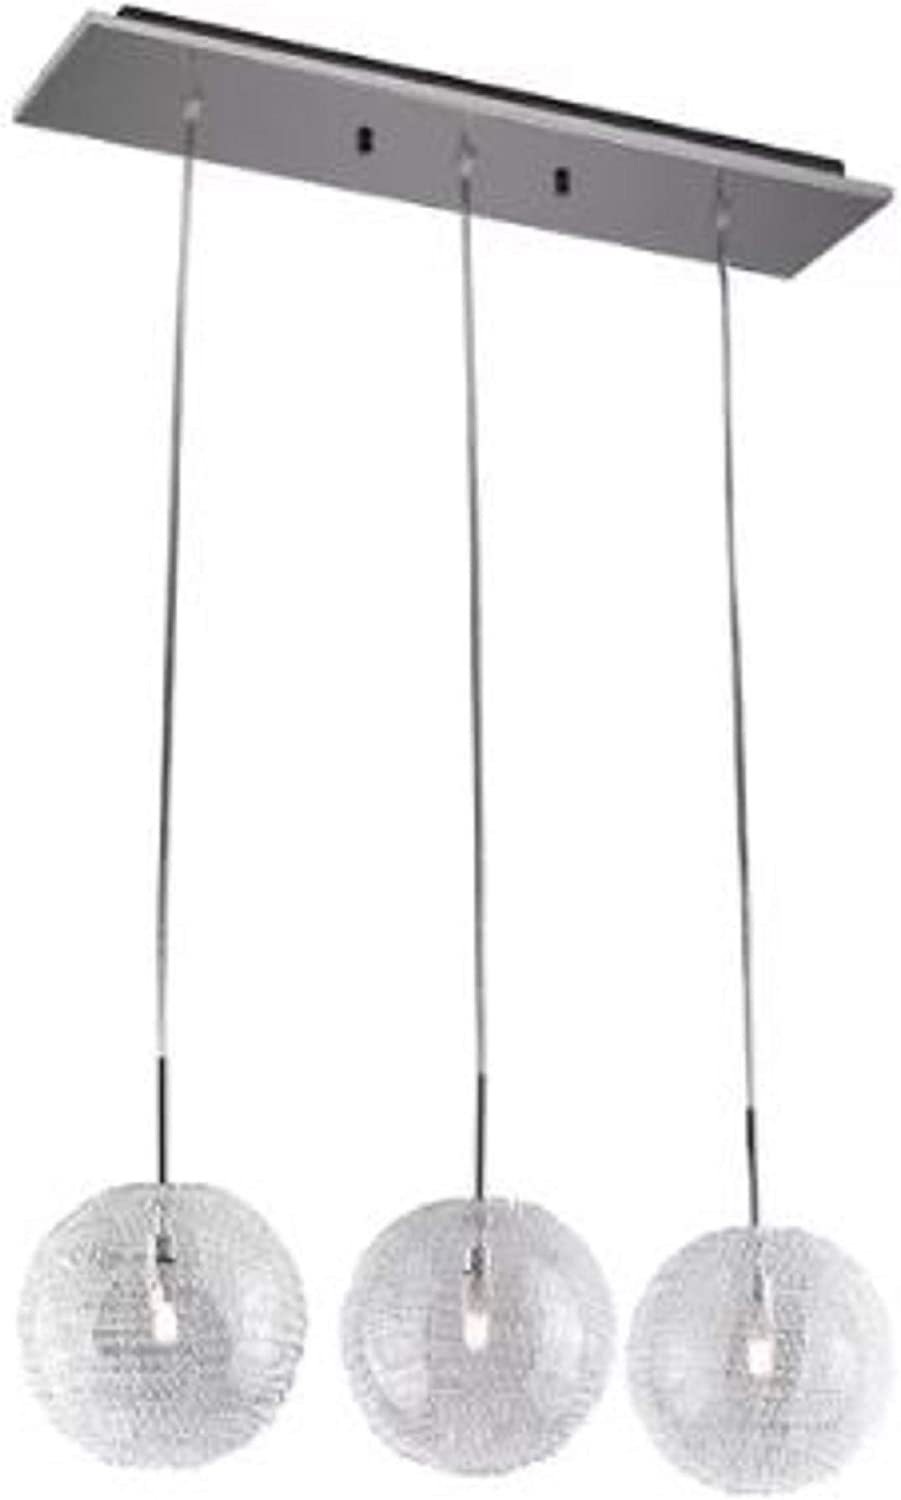 3 Light Kitchen Island Lighting. Marcos 3 Light Kitchen Island Lighting Pendant Look Great Hanging in a Kitchen, Dining Room or Living Room